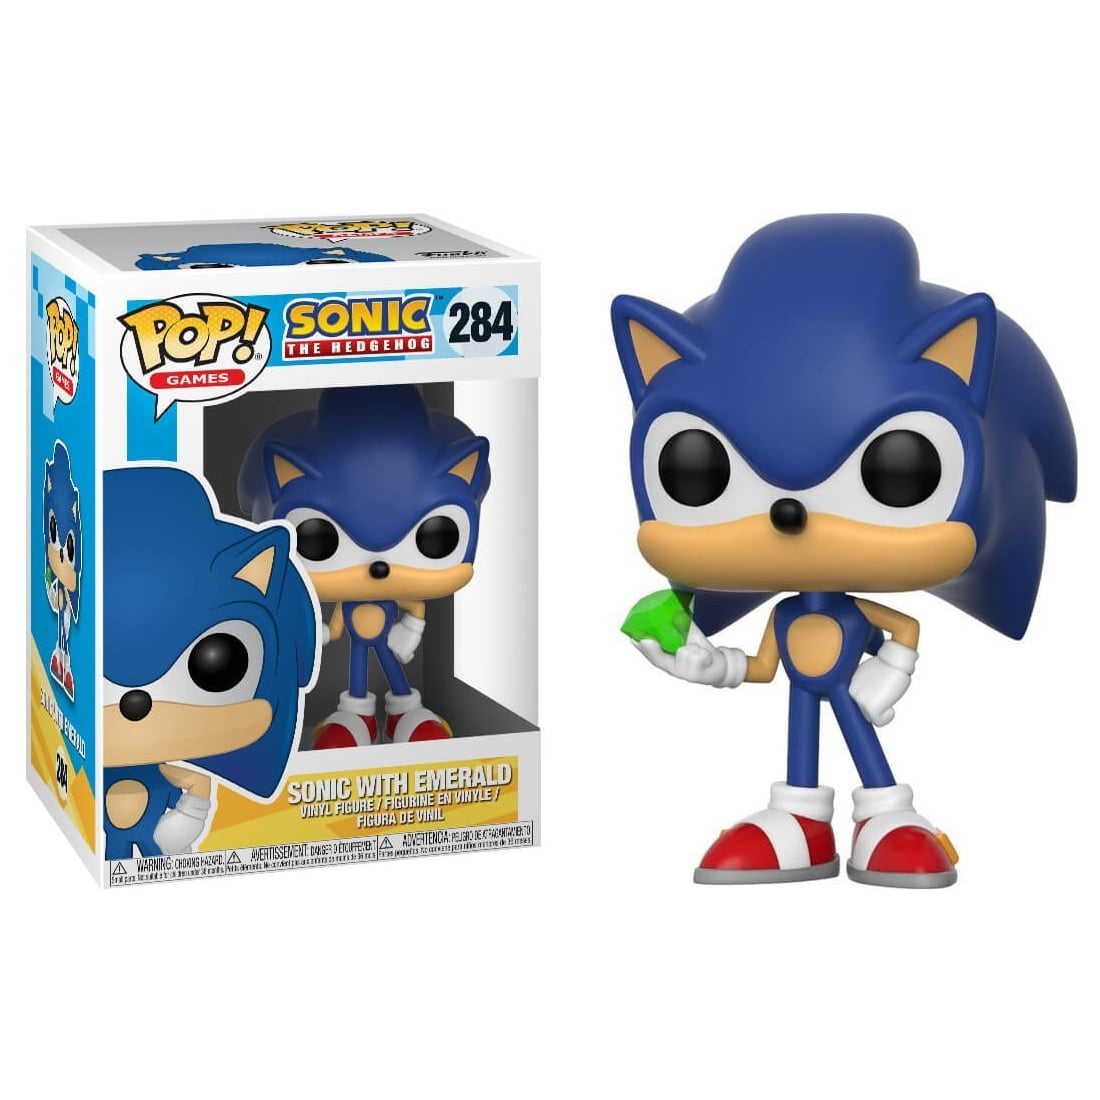 POP! SONIC THE HEDGEHOG - SONIC WITH EMERALD